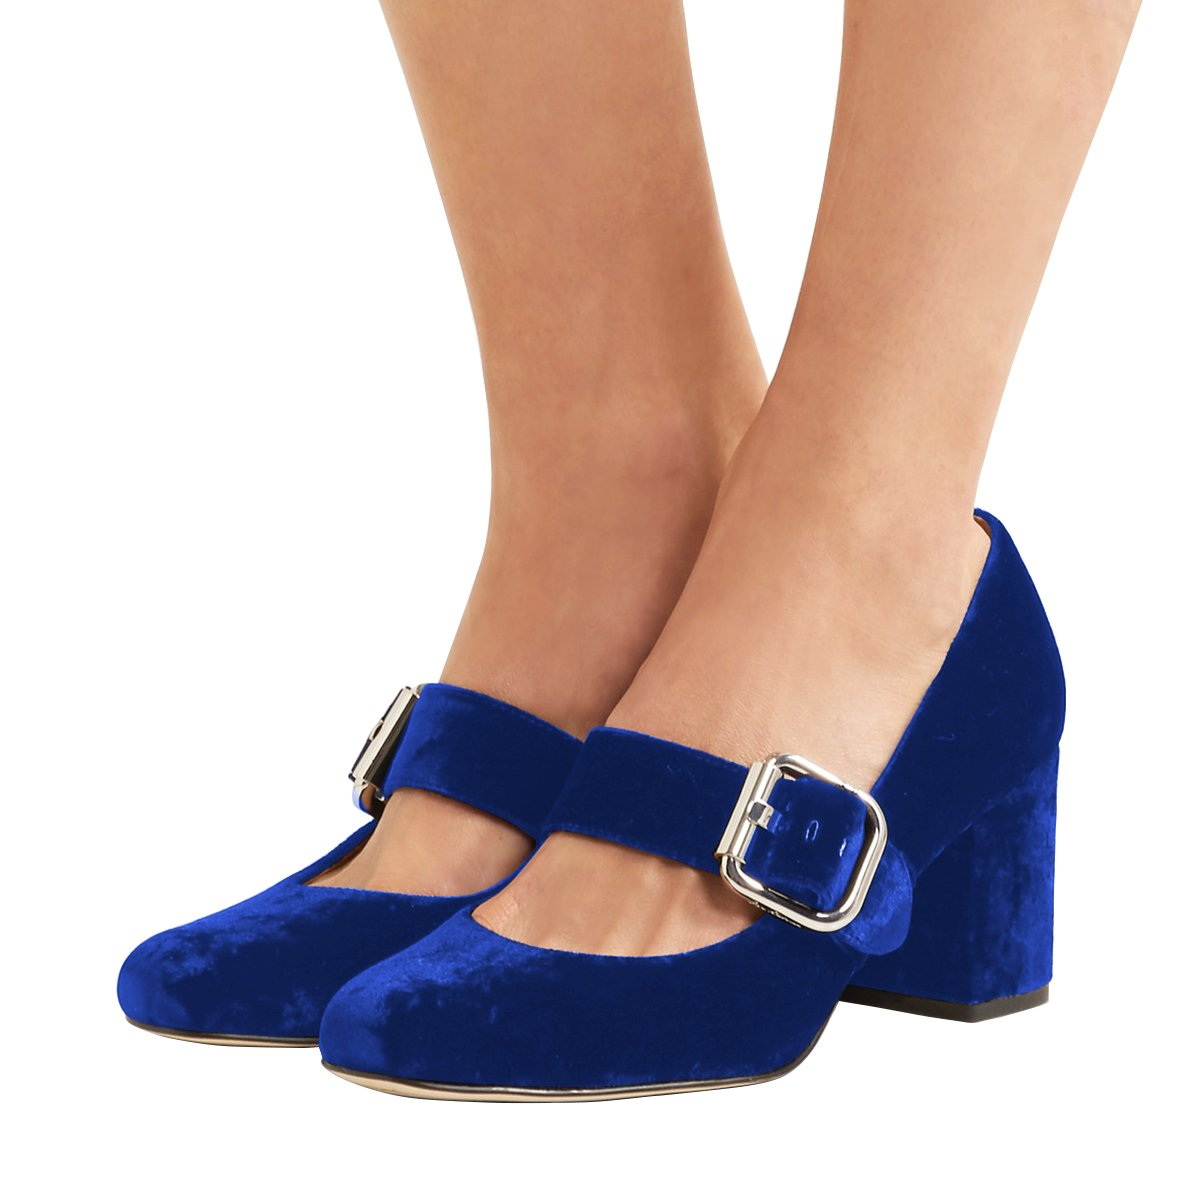 XYD Comfort Marry Jane Pumps Velvet Chunky Heel Square Toe Buckle Dress Shoes for Women Size 11 Blue